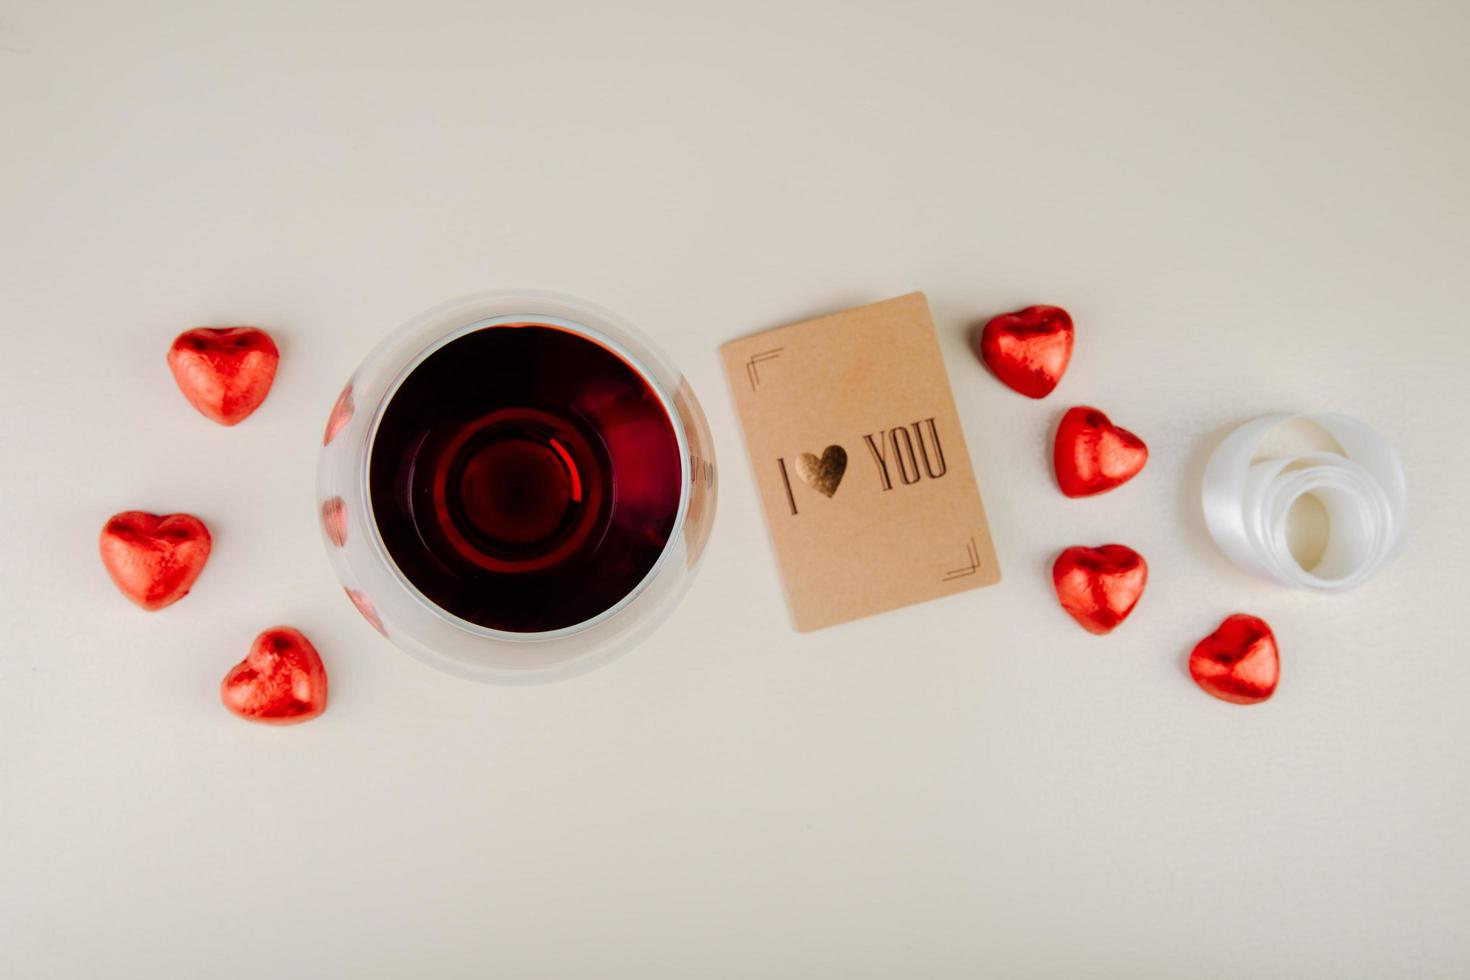 Top view of a glass of wine with heart-shaped chocolates and a card photo